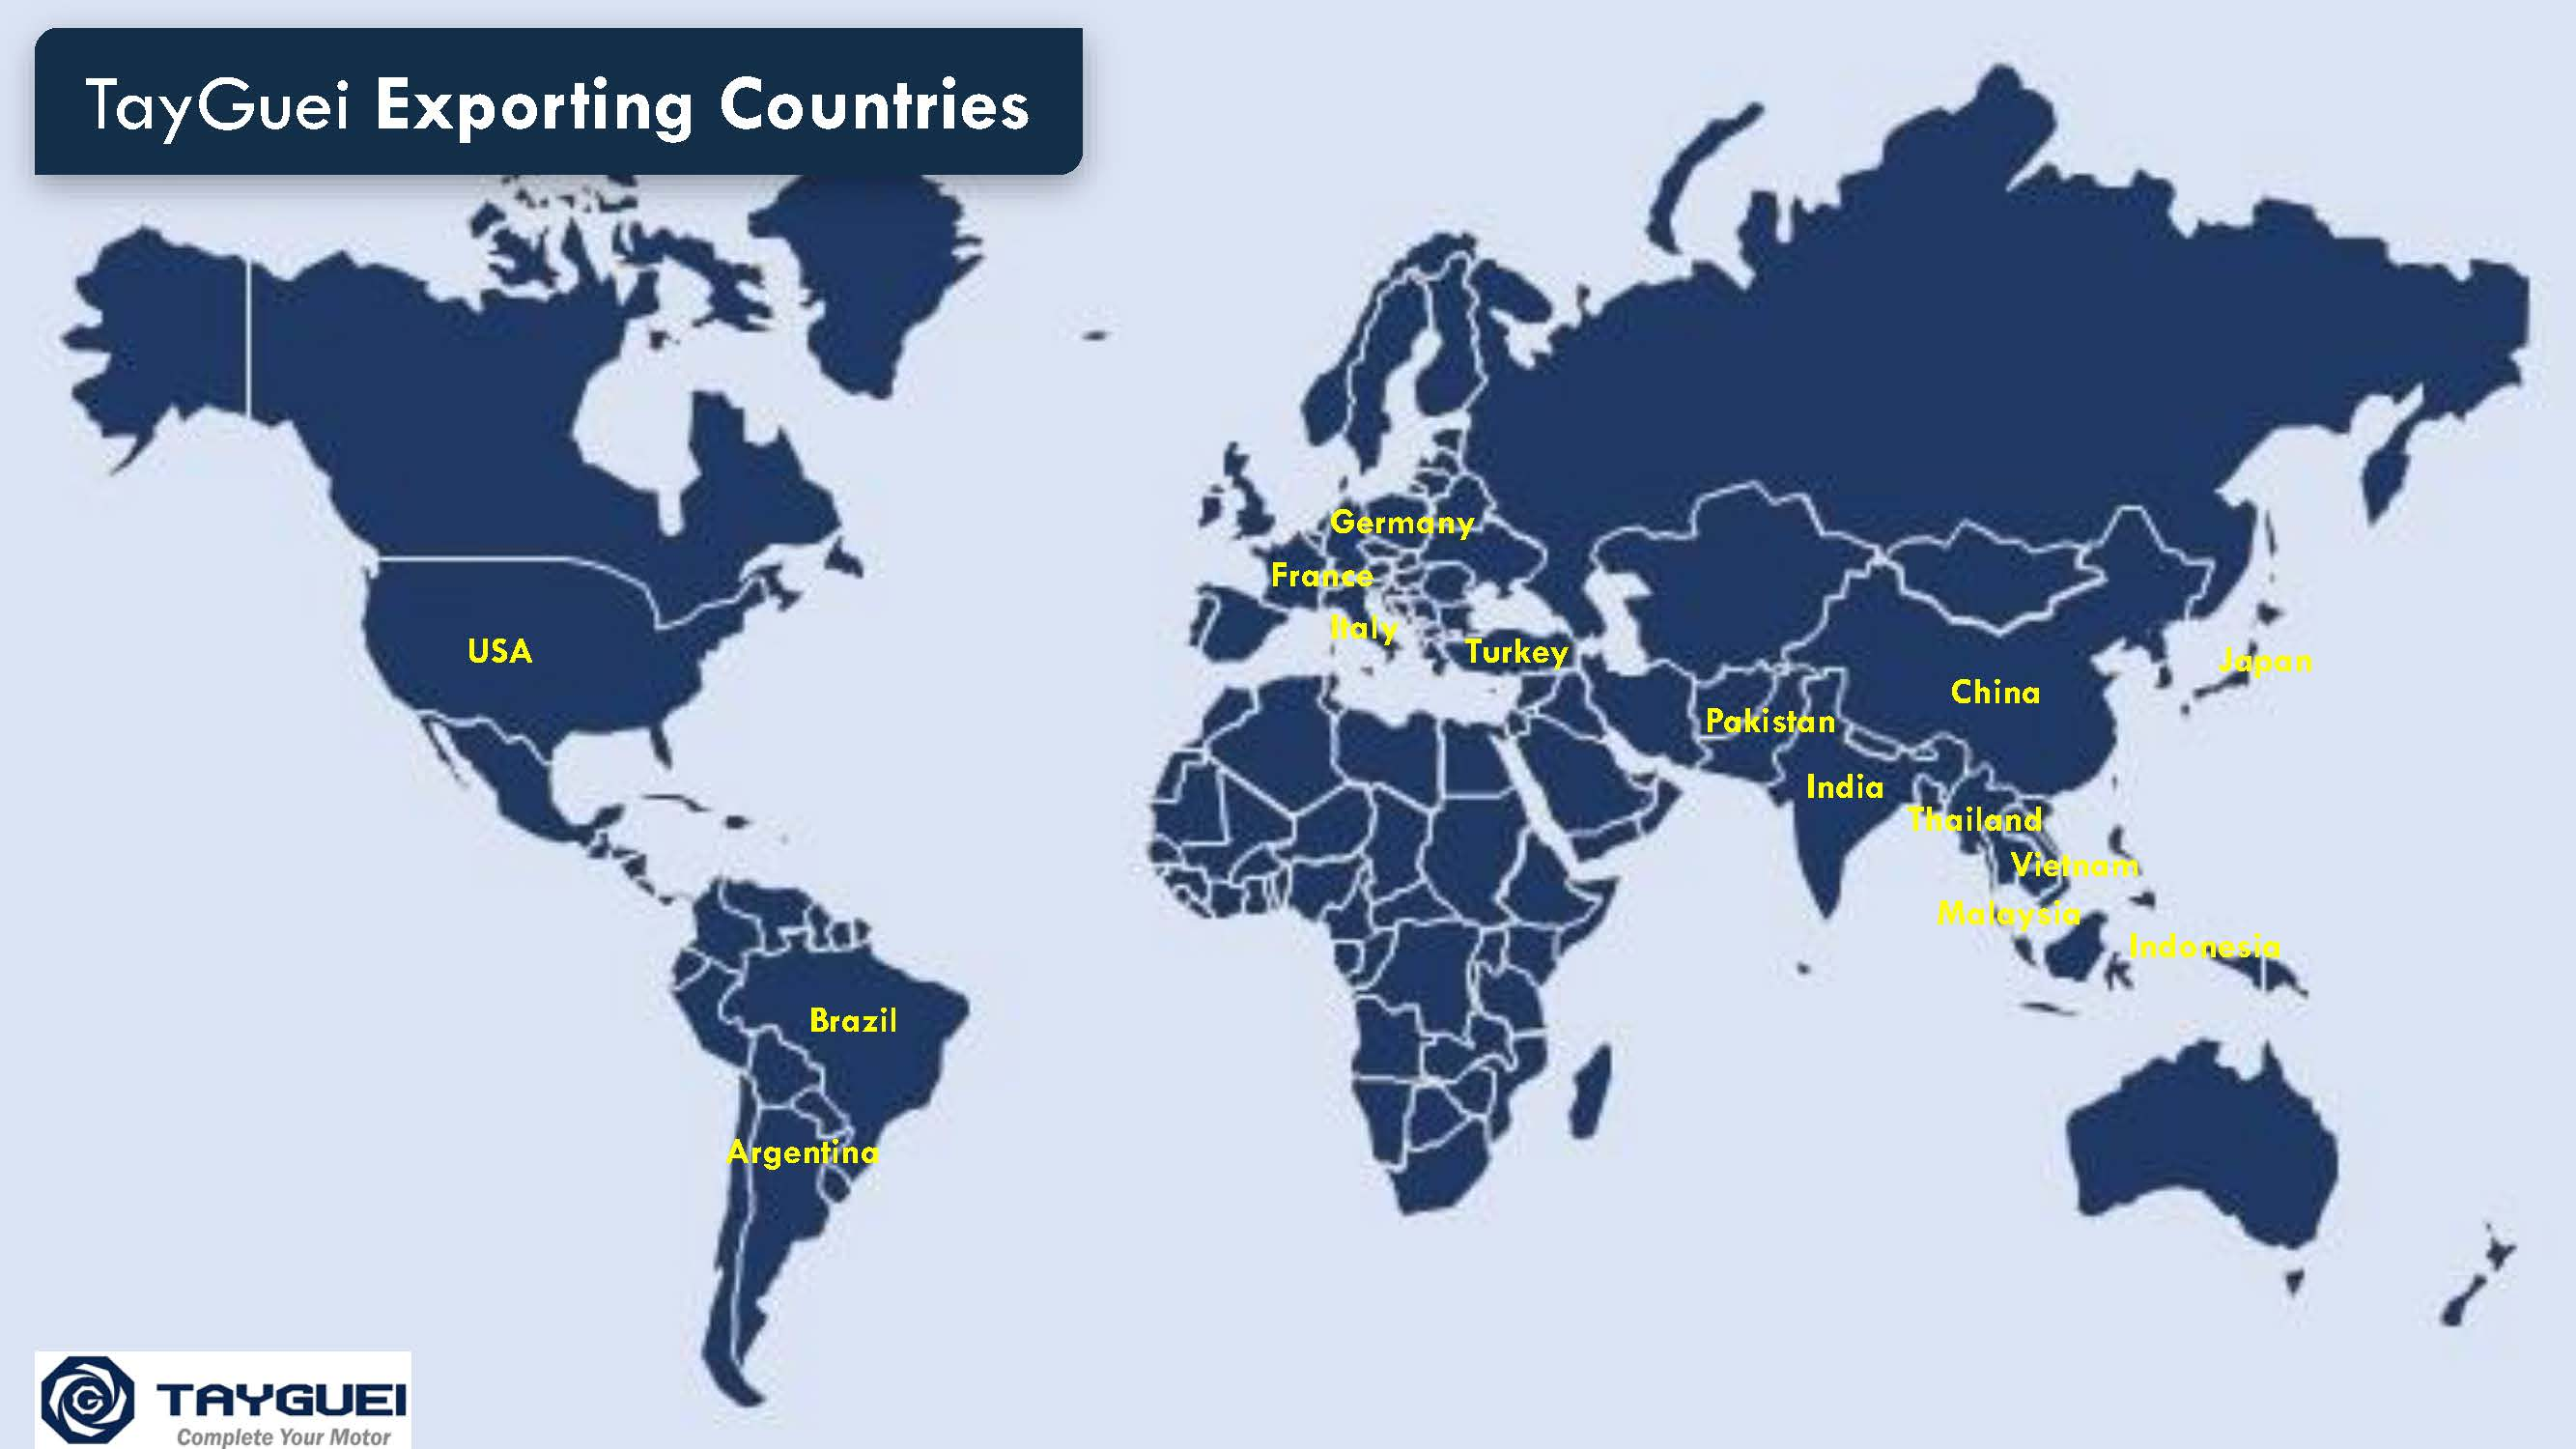 There are 15 countries to be exported.